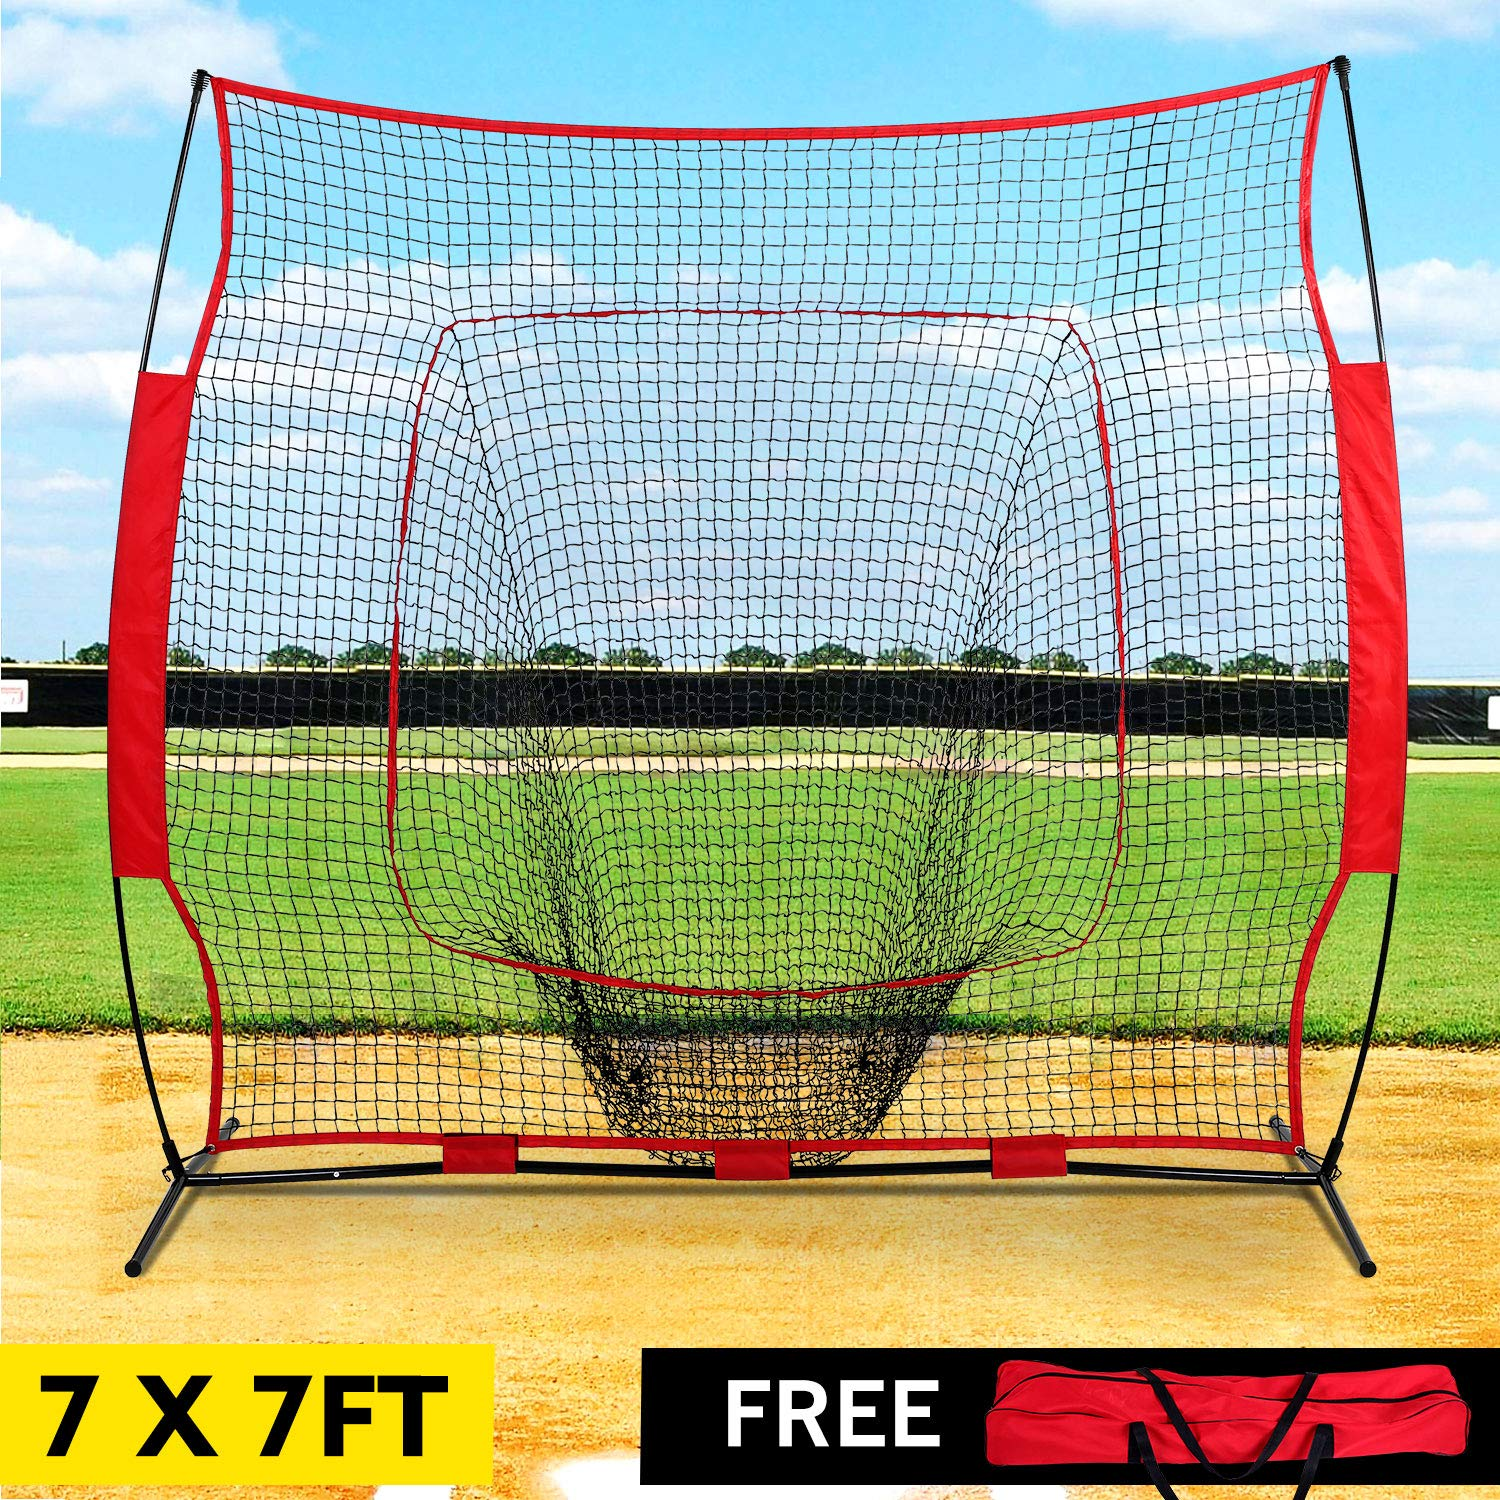 GARTIO 7'×7' Baseball Softball PracticeNet, Hitting & Pitching Batting Fielding Training Equipment with Carry Bag, Portable Easy Setup, Suit for Team or Solo All Skill Levels Training Indoor Outdoor by GARTIO